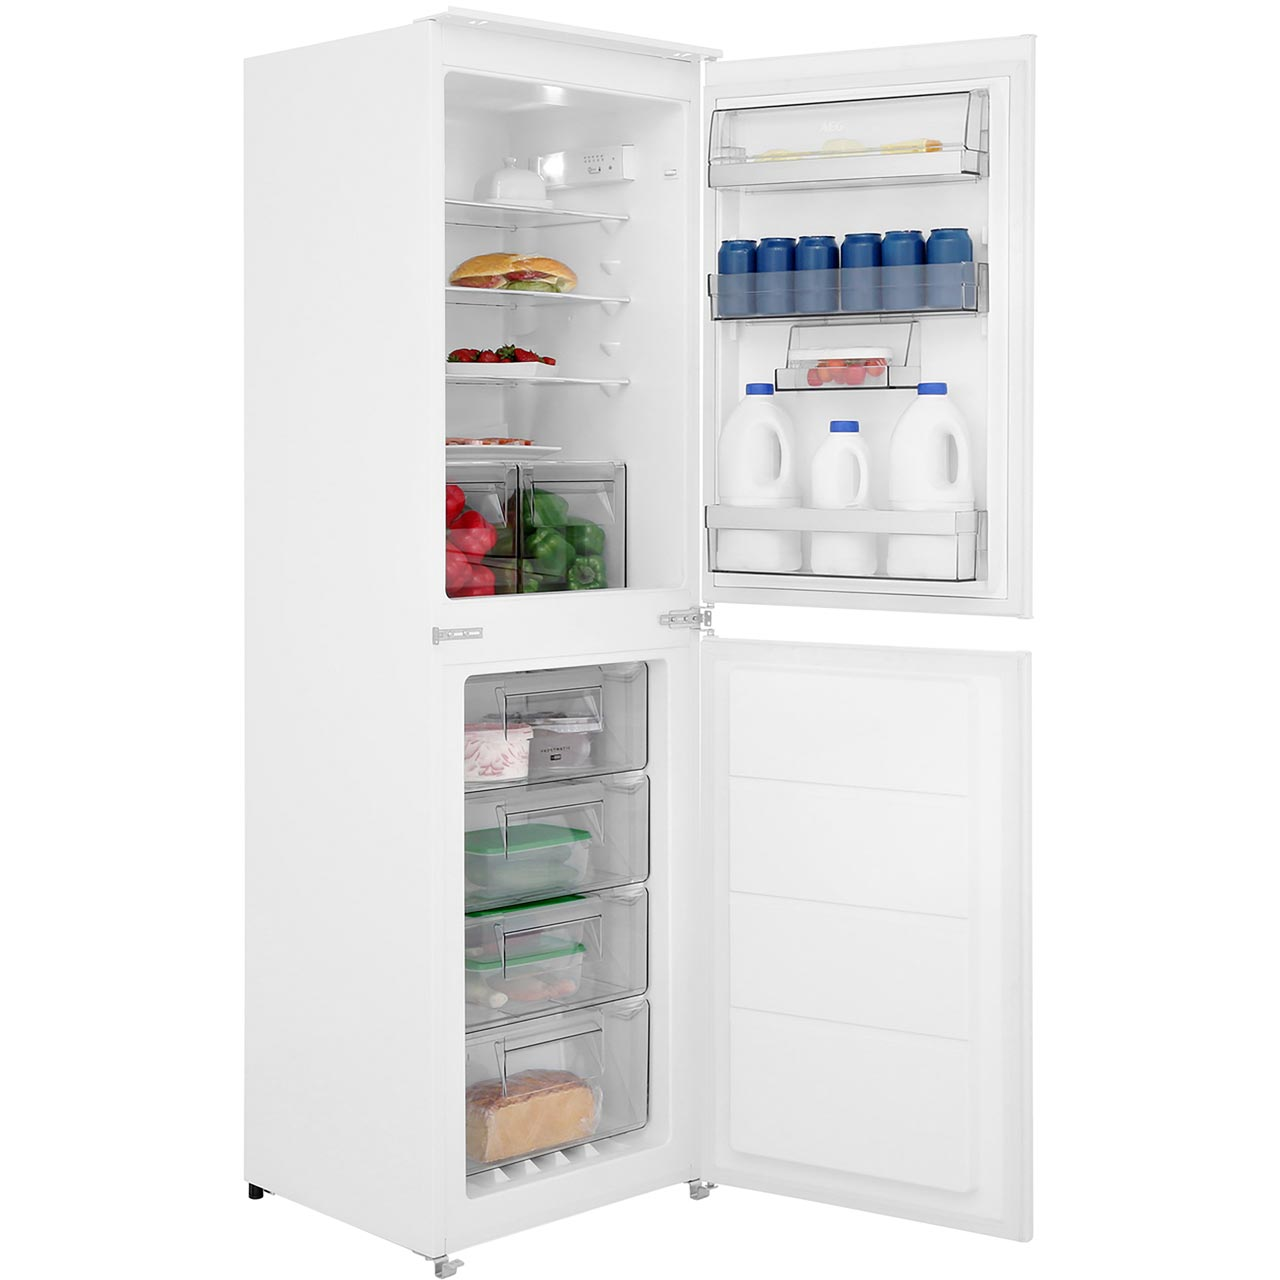 New Refrigerator Freezer Combos From Aeg Newlibrarygood Com